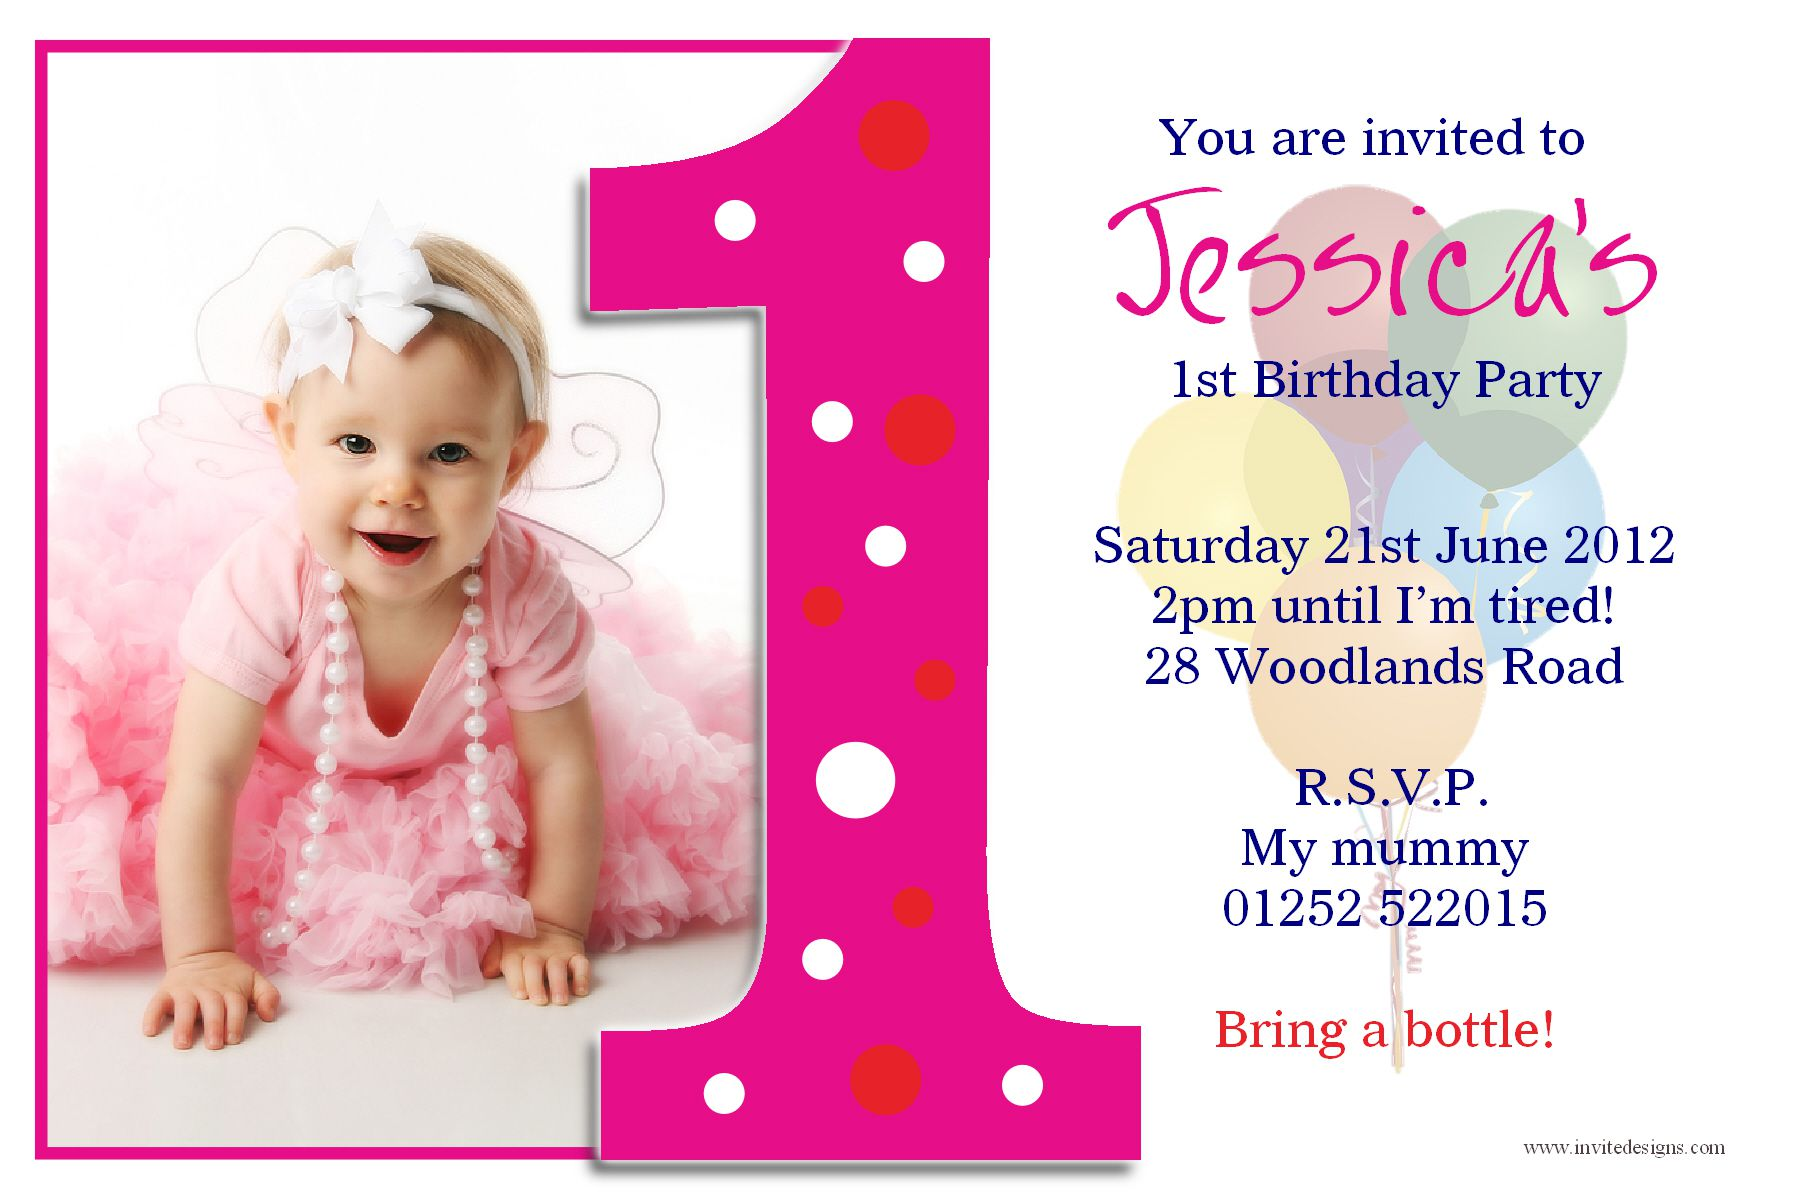 birthday invitation design ; Birthday-Invitation-Design-and-get-inspired-to-create-your-own-birthday-Invitation-design-with-this-ideas-1